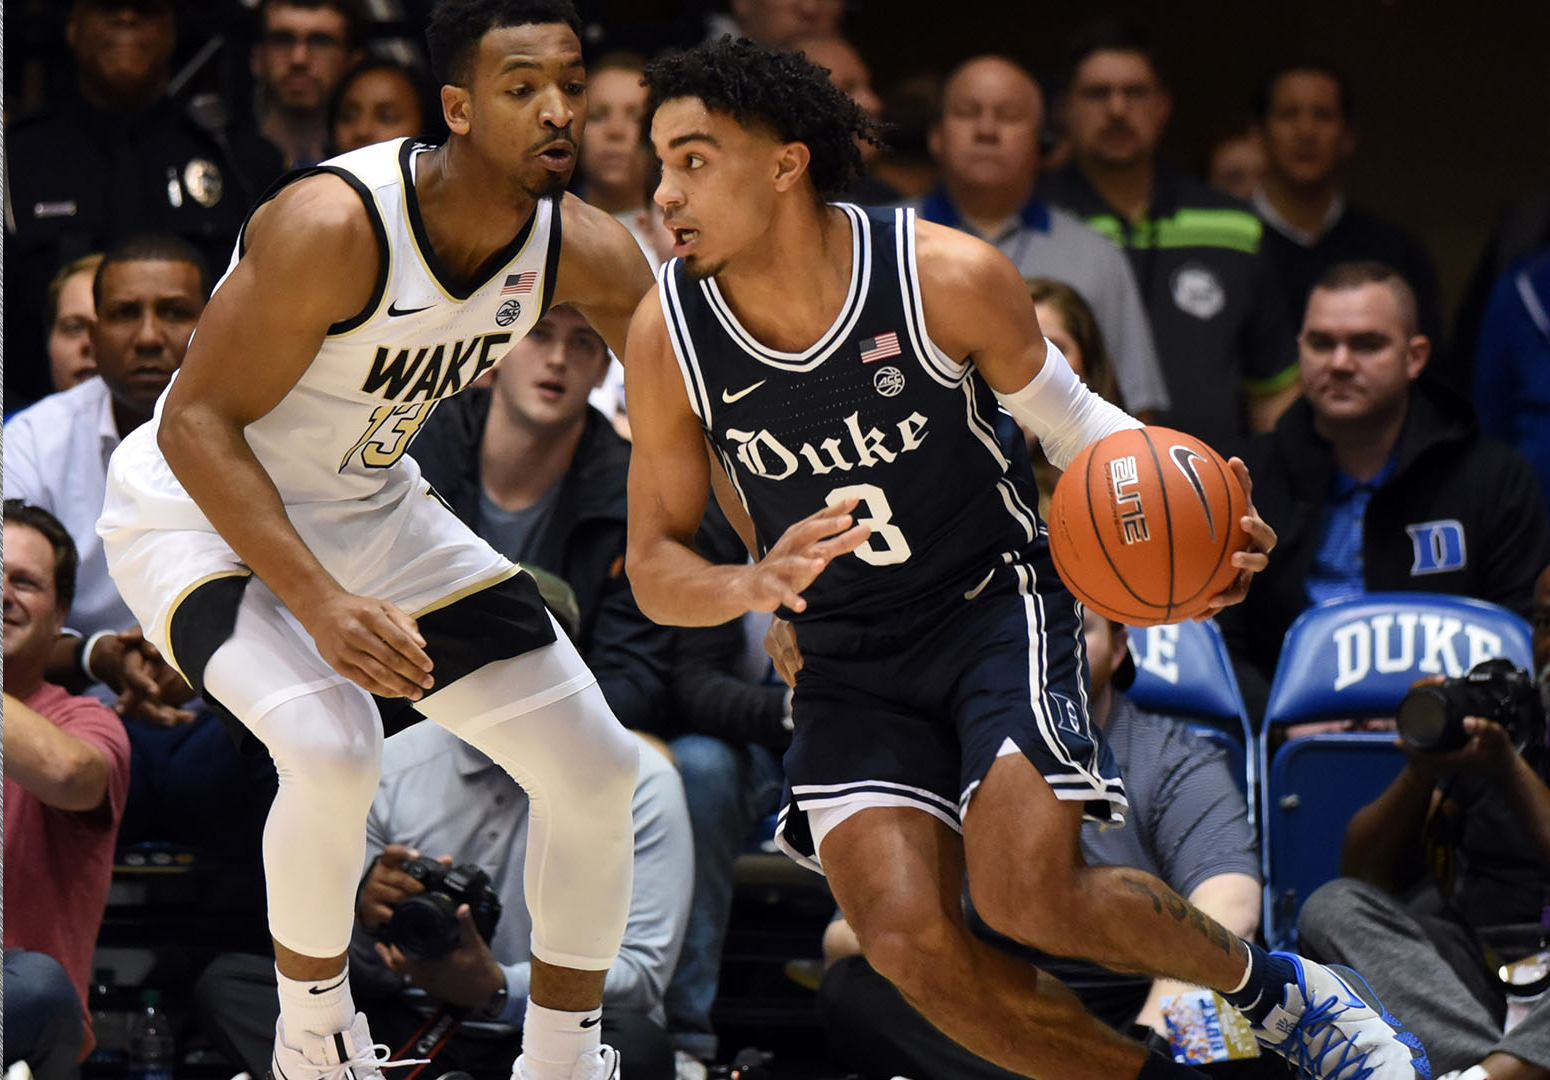 Tre Jones Named ACC Player of the Week